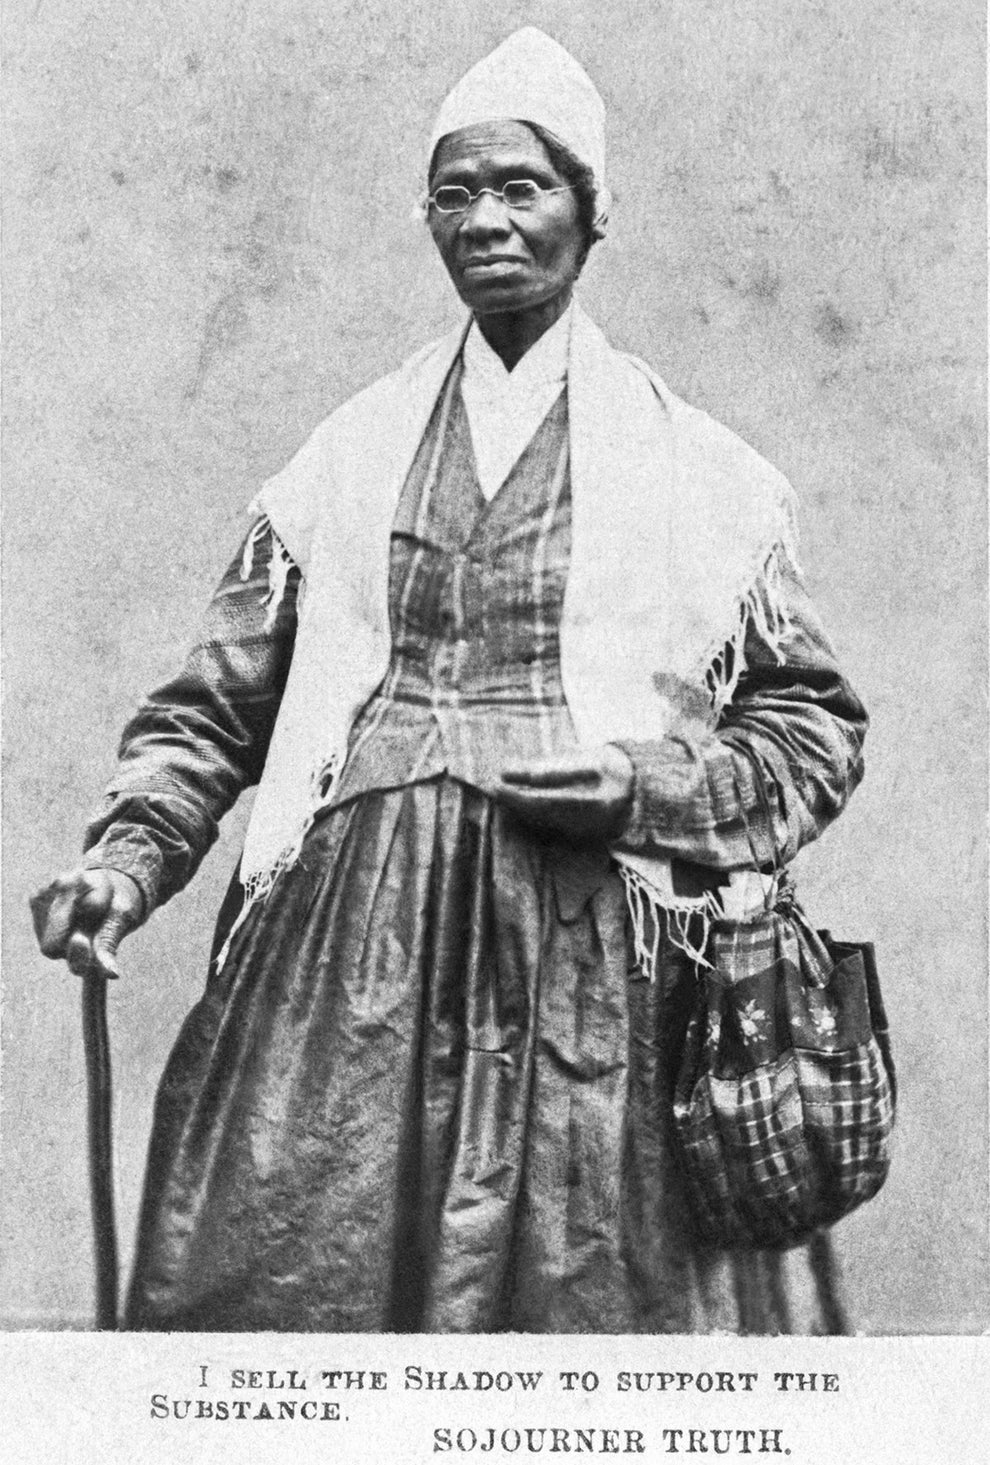 Sojourner Truth, abolitionist and women's rights advocate.